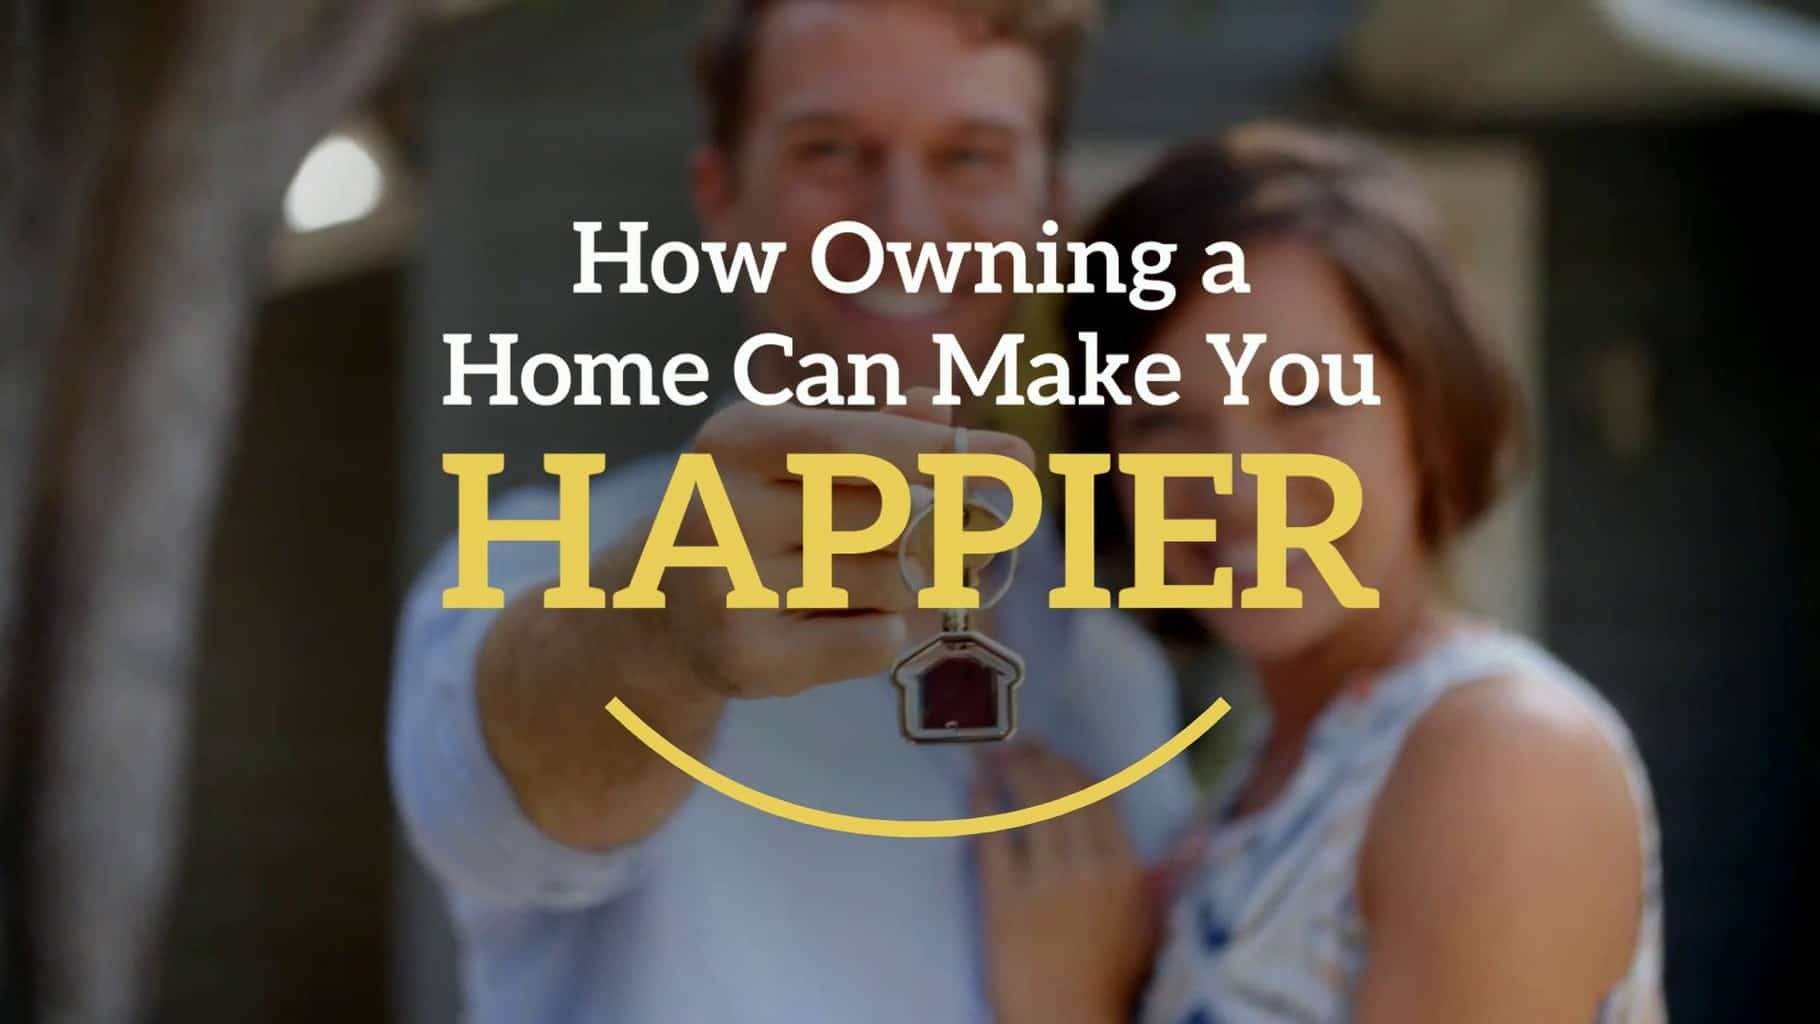 How-Owning-a-Home-Can-Make-You-Happier